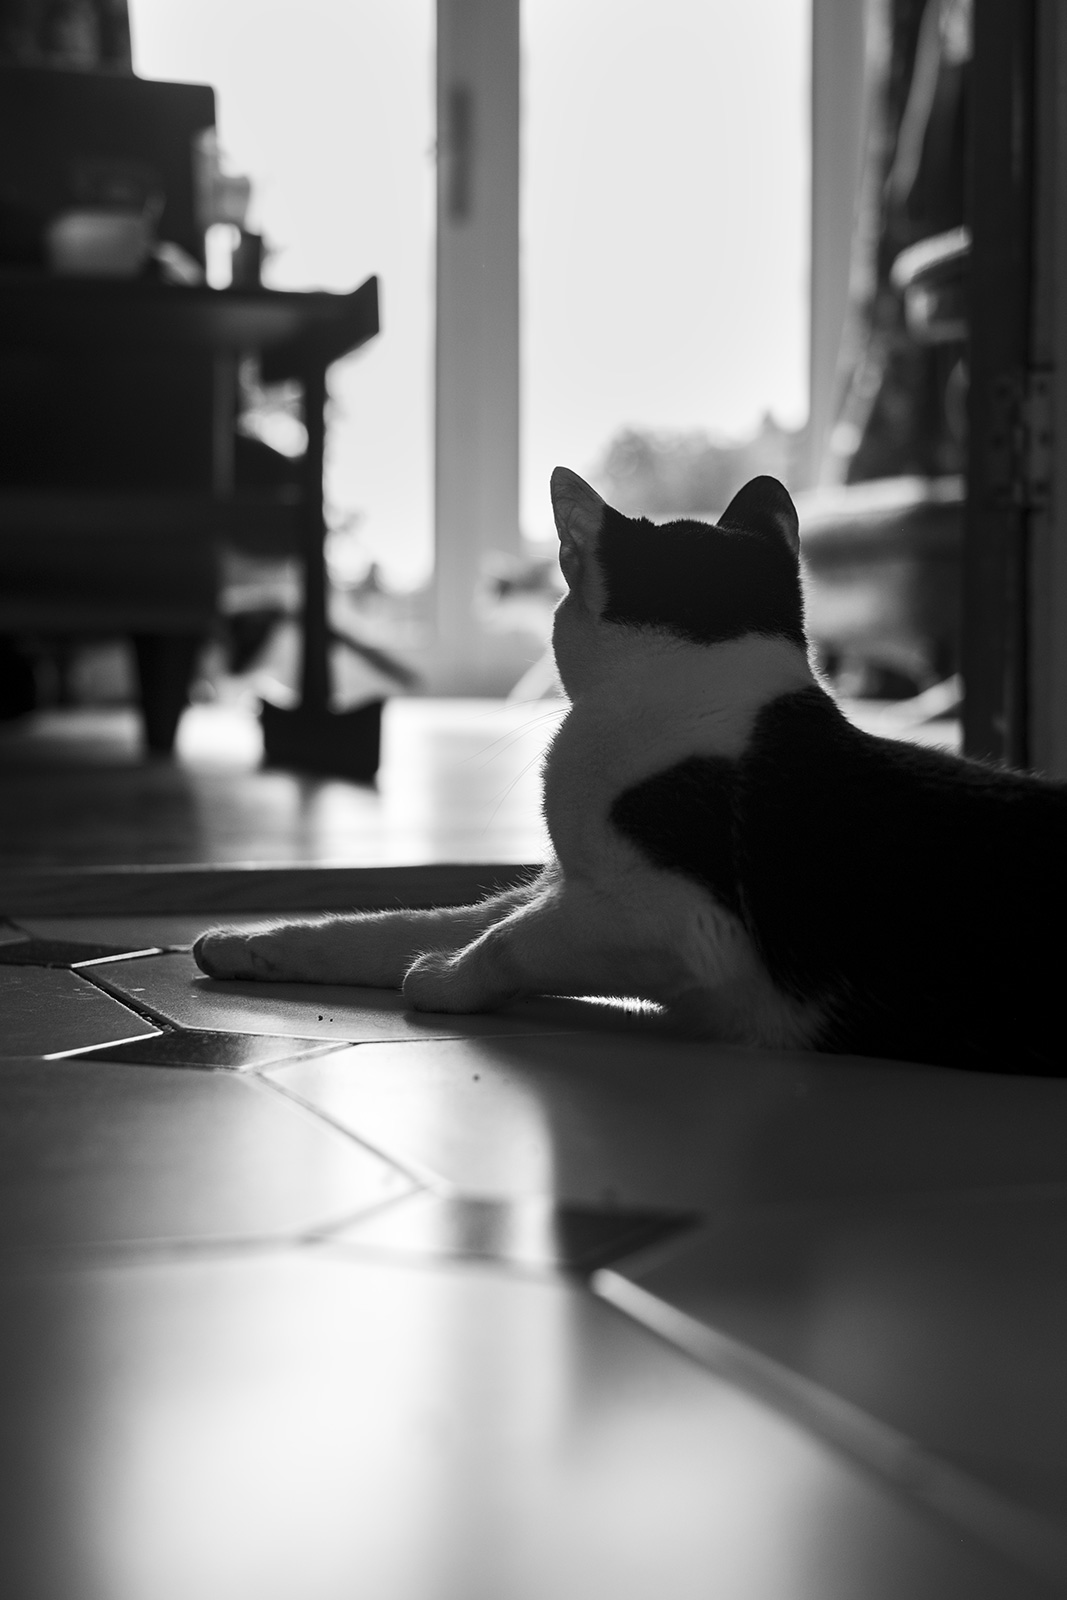 Black and white cat looking away from viewer into light from french windows black and white portrait photograph P. Maton 2019 eyeteeth.net